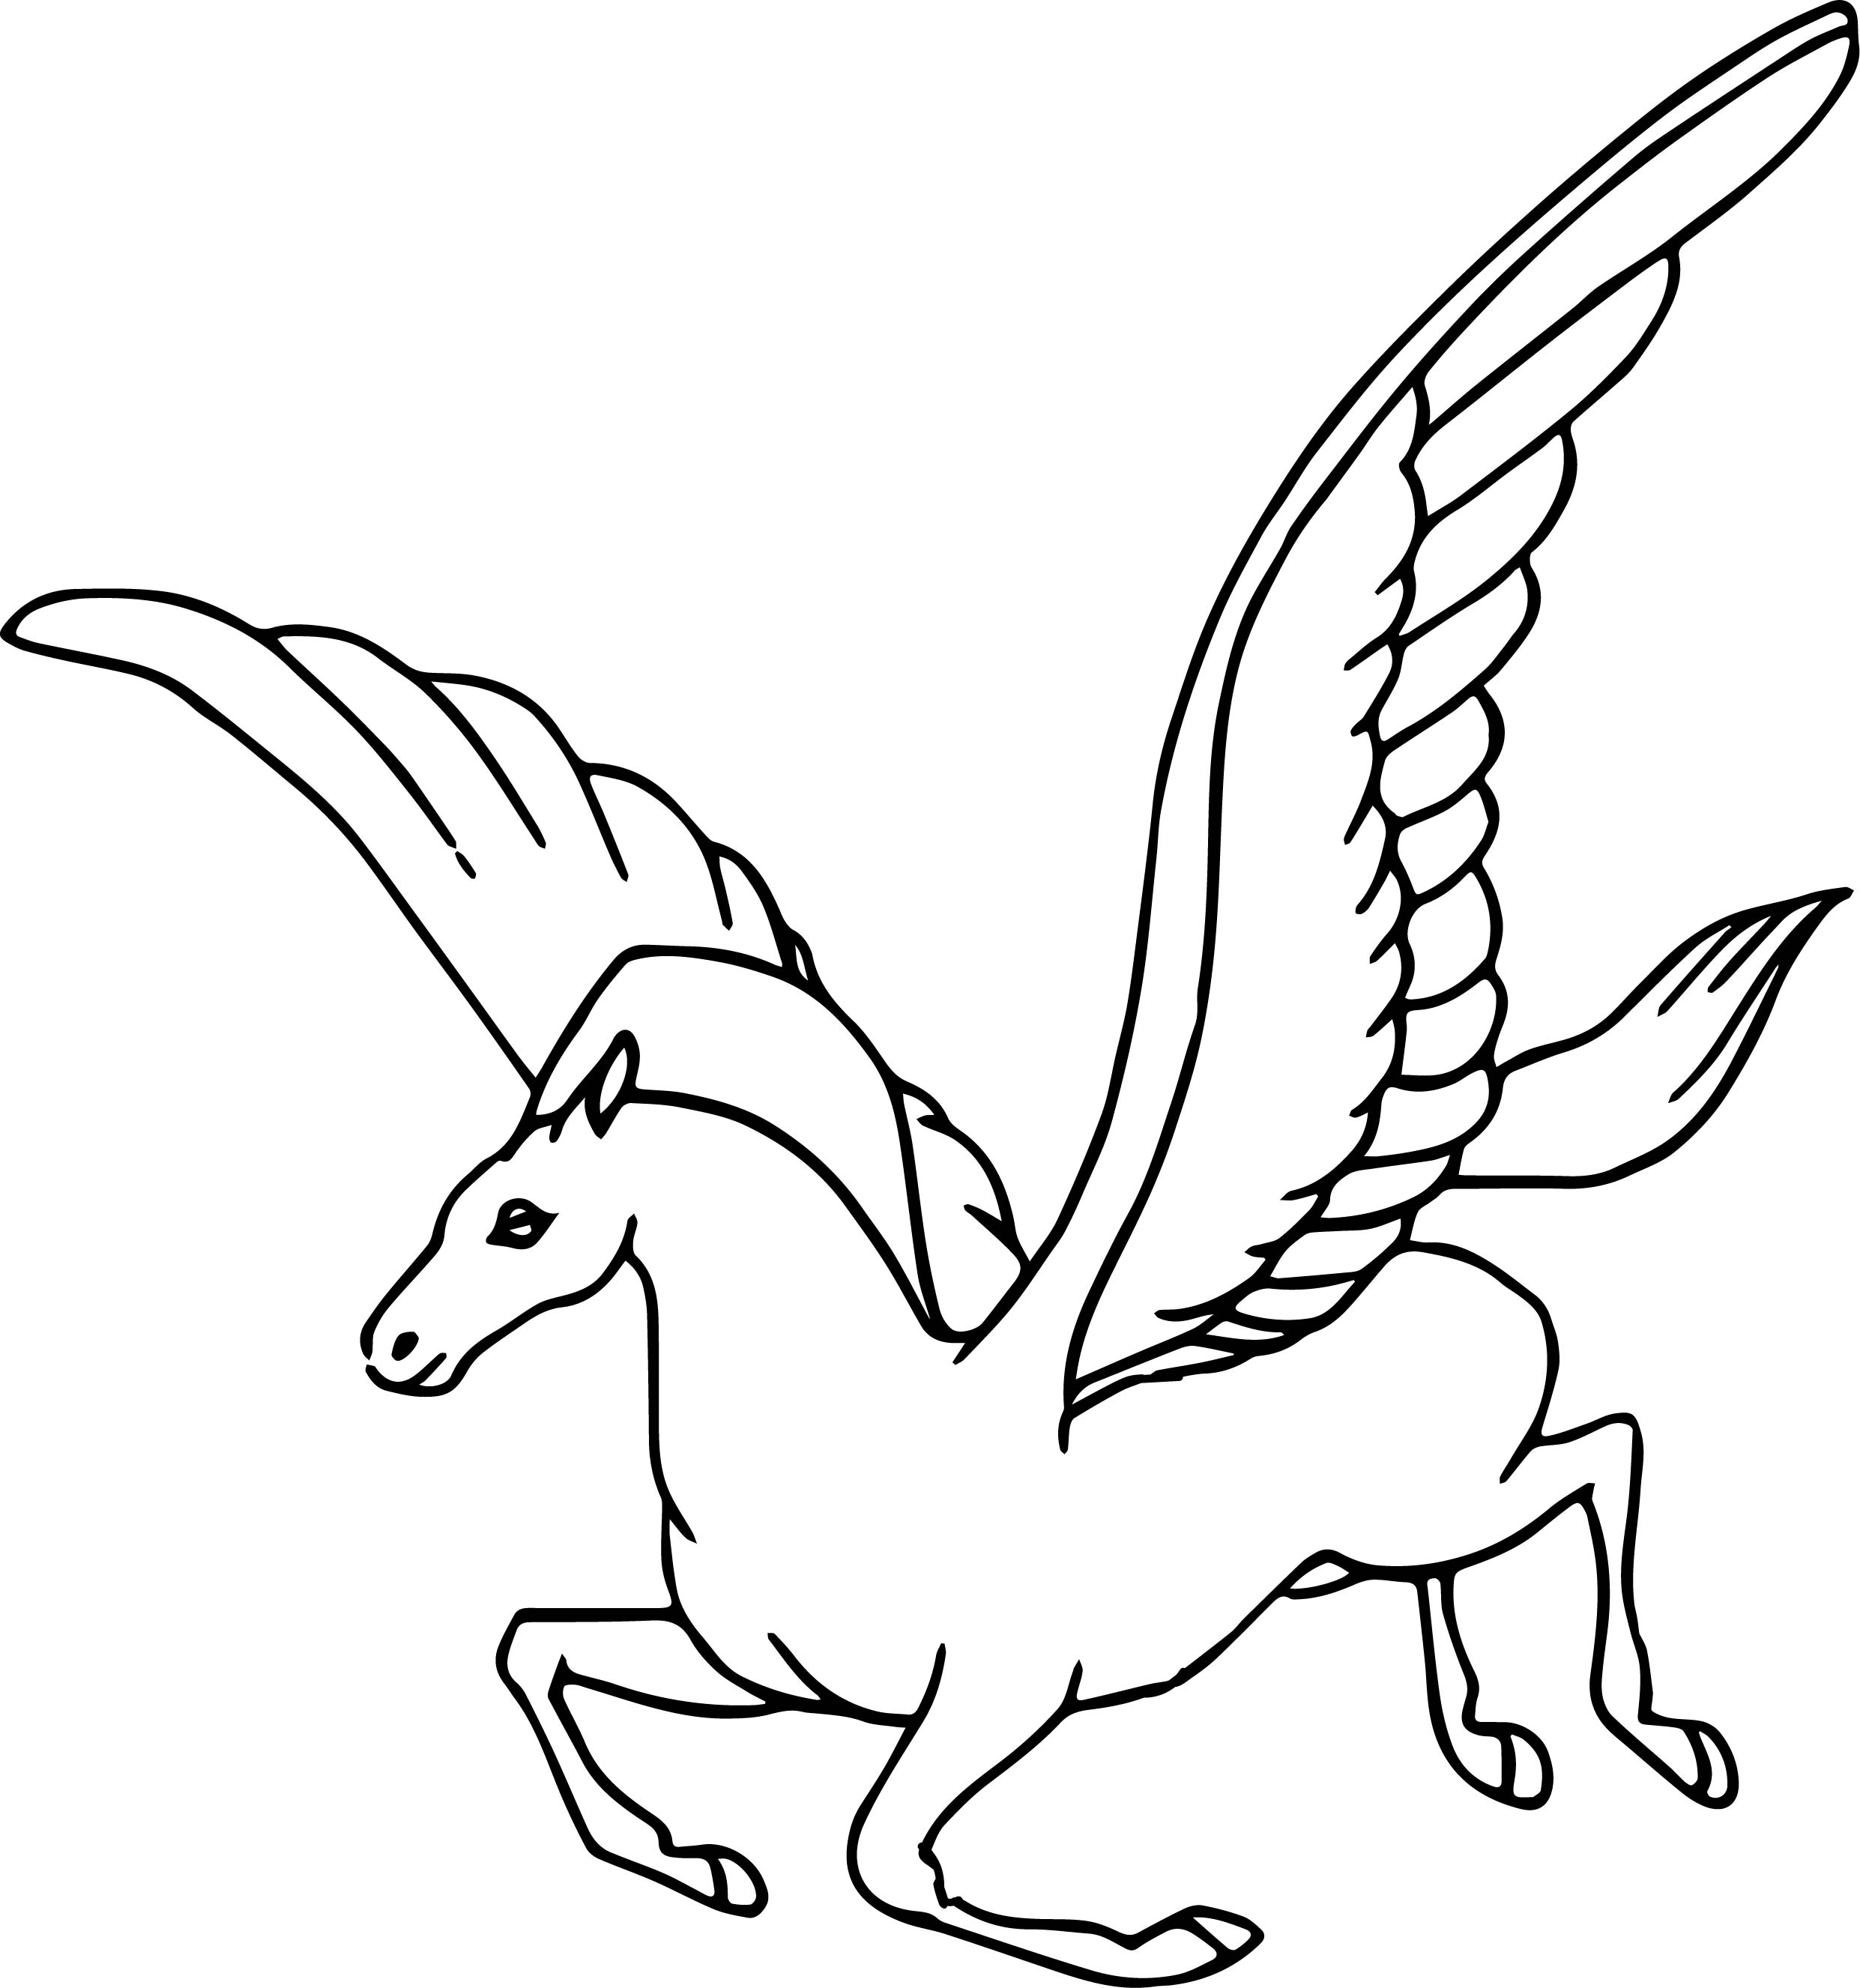 Fantasia pegasus coloring pages for Coloring pages of pegasus